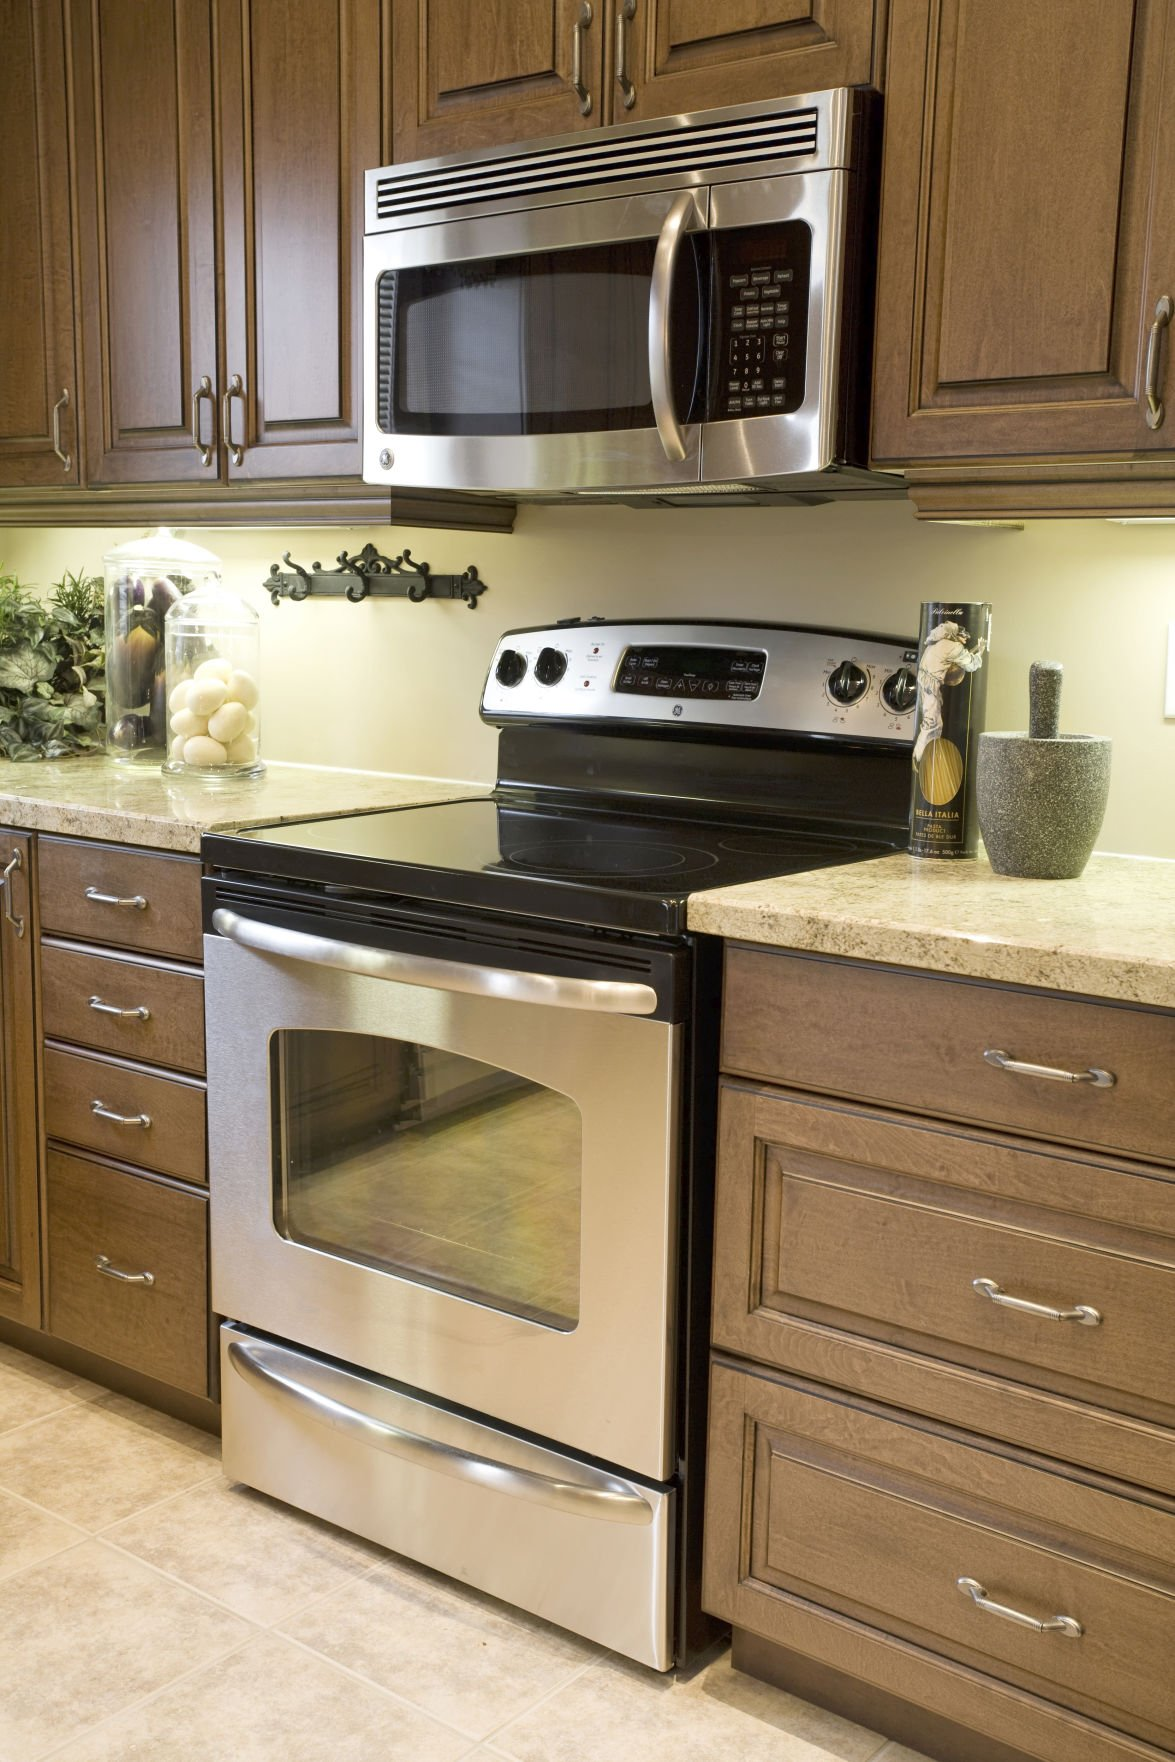 Appliances Counters Benefit From Deep Clean After